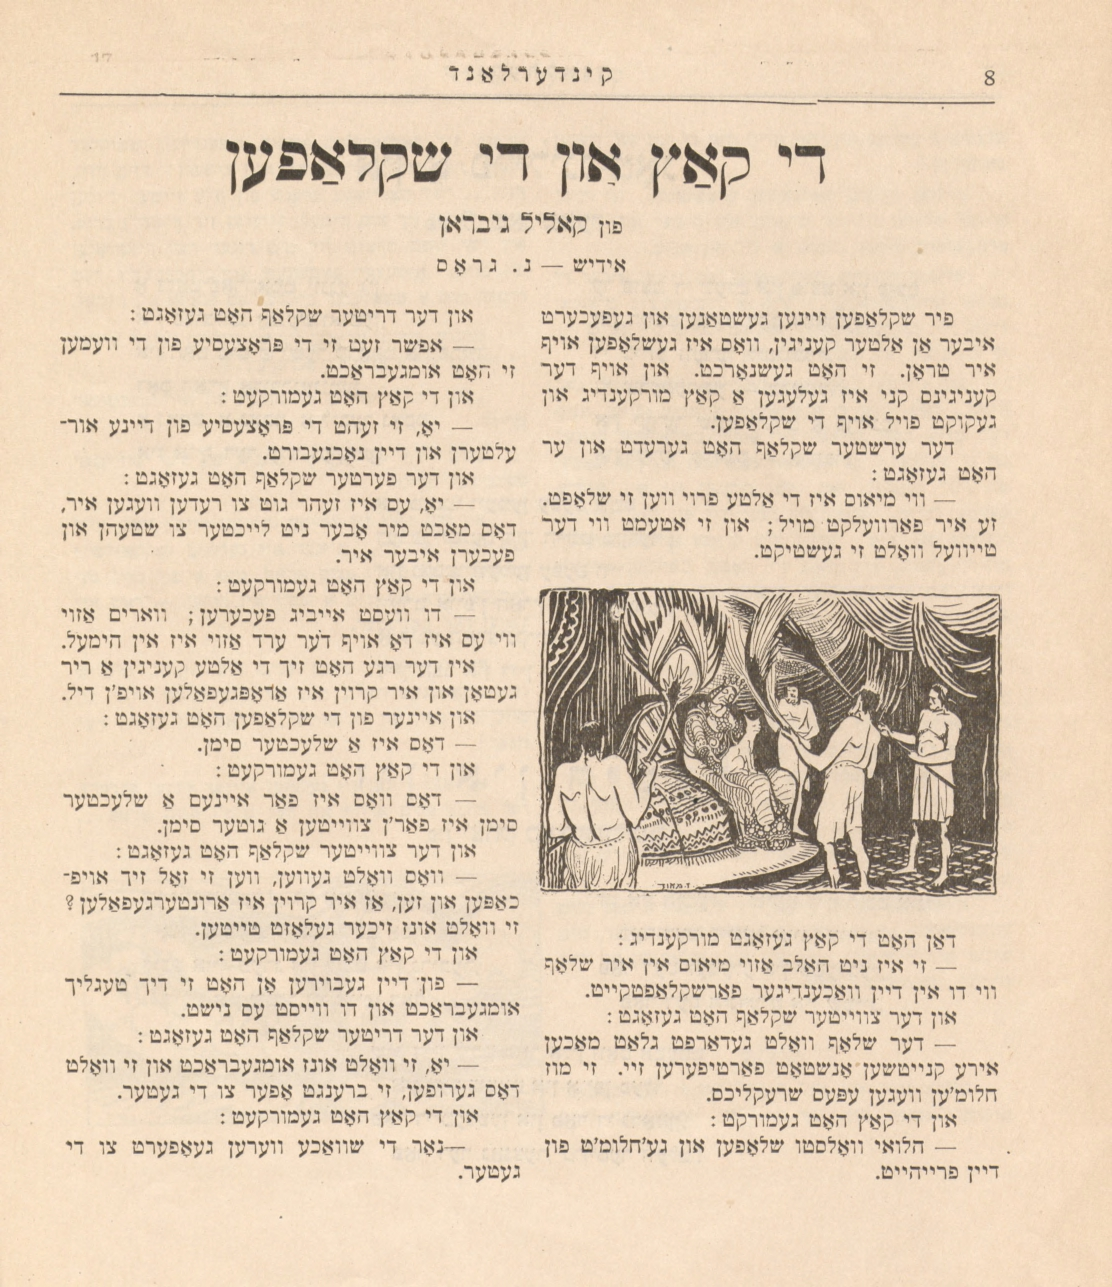 The Slaves and the Cat by Kahlil Gibran, translated into Yiddish by Naftali Gross, Kinderland, Vol. 1, N0. 5, May, 1921, p. 8.